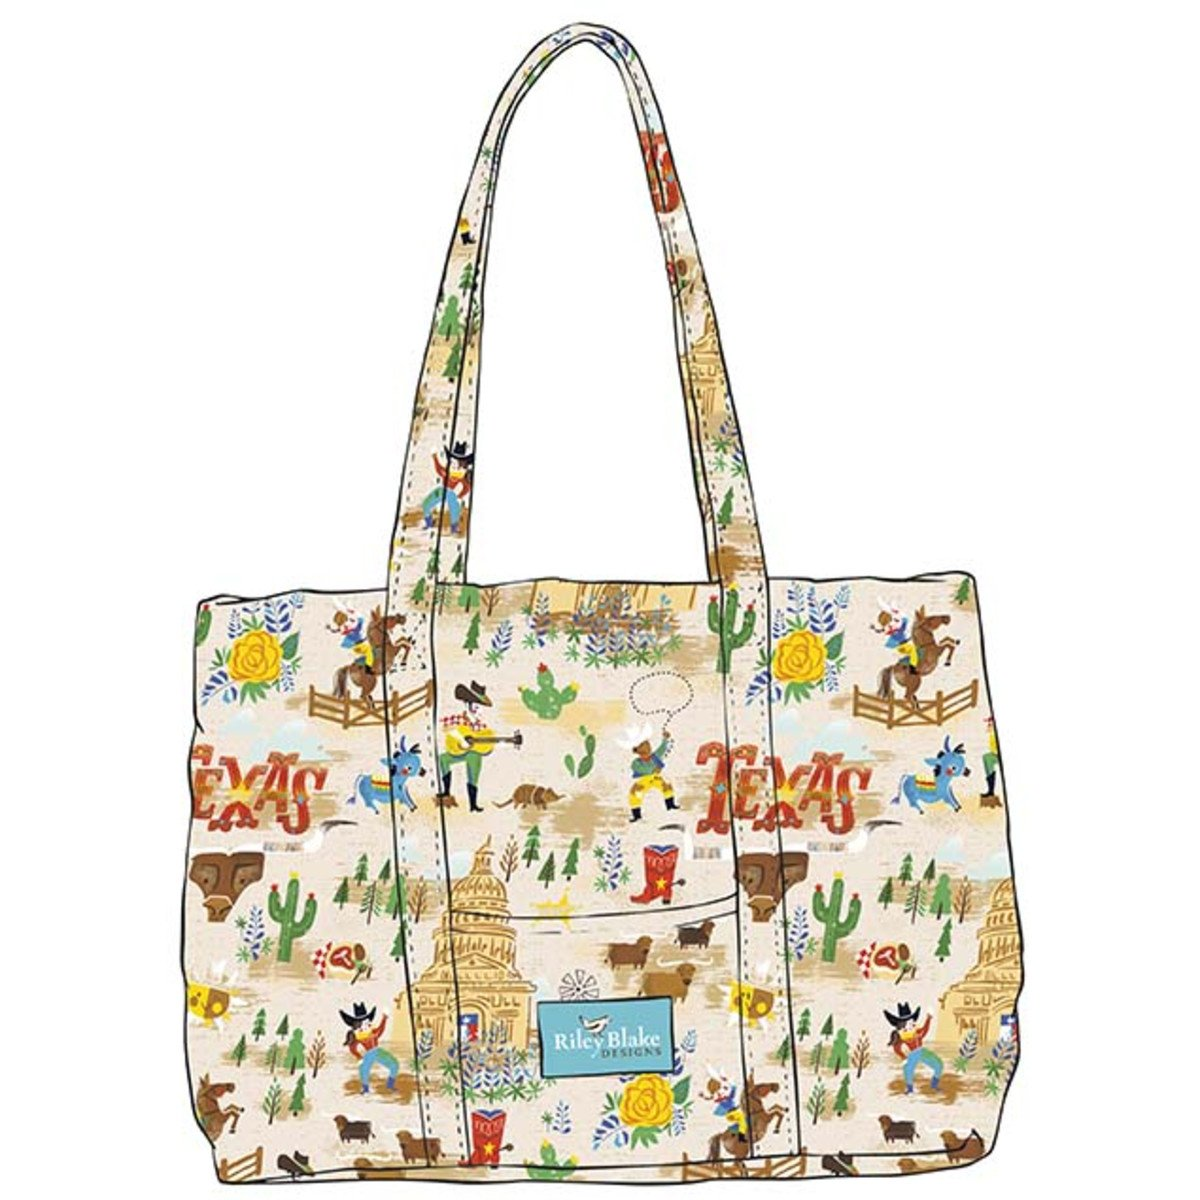 Riley Blake - Texas quilted bag